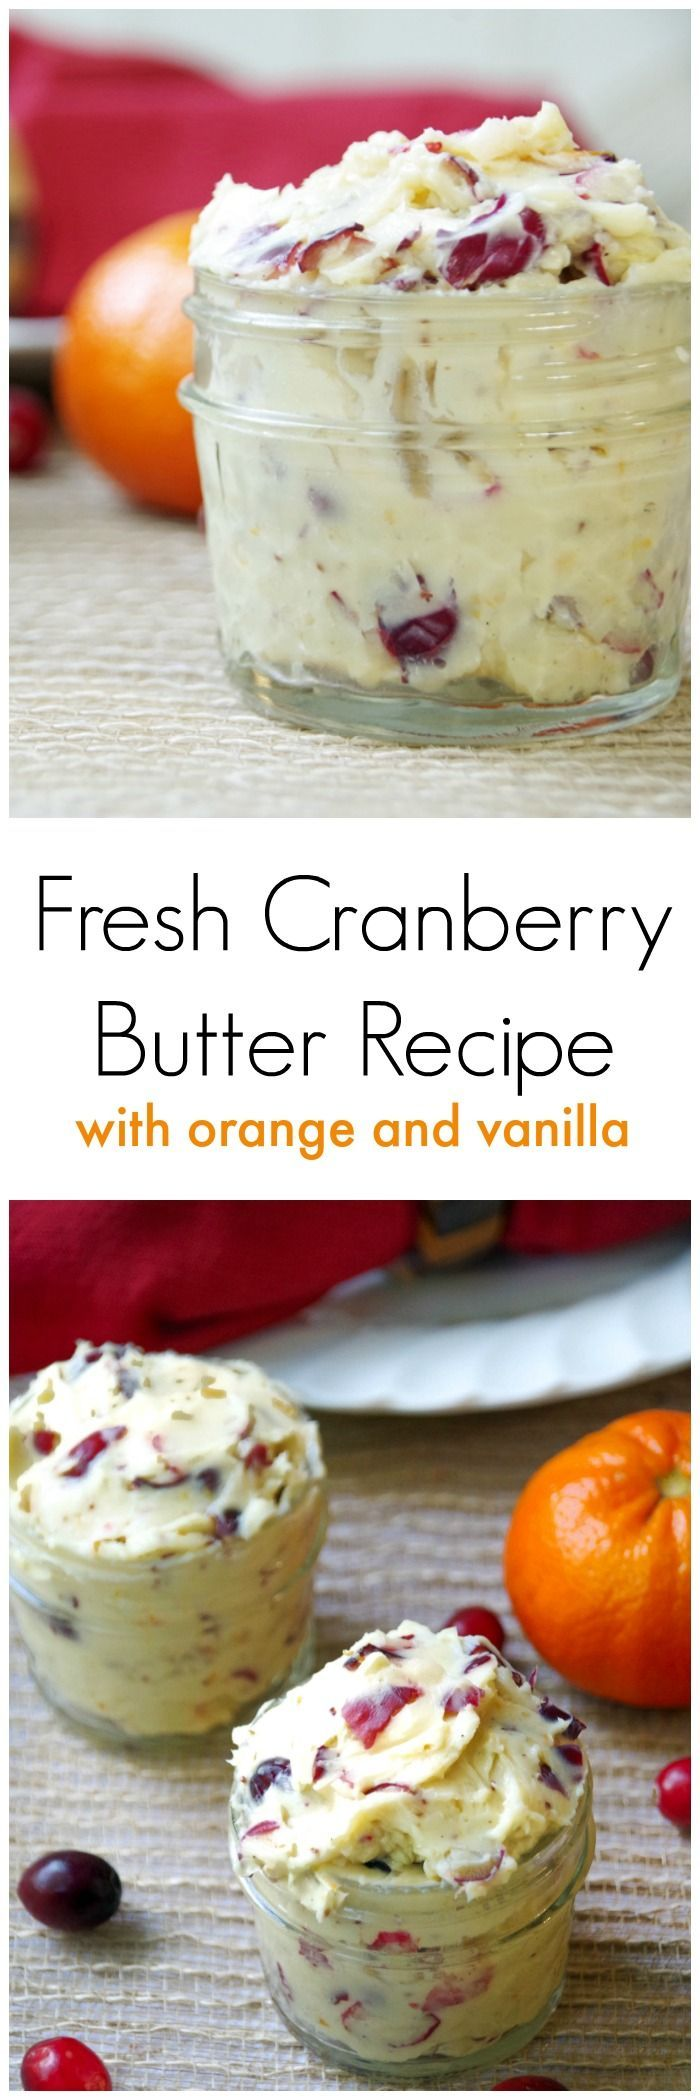 Looking for easy cranberry recipes?  Try this fresh cranberry butter recipe with orange and vanilla.  Great on rolls, biscuits, croissants, or bagels! via @DianeHoffmaster